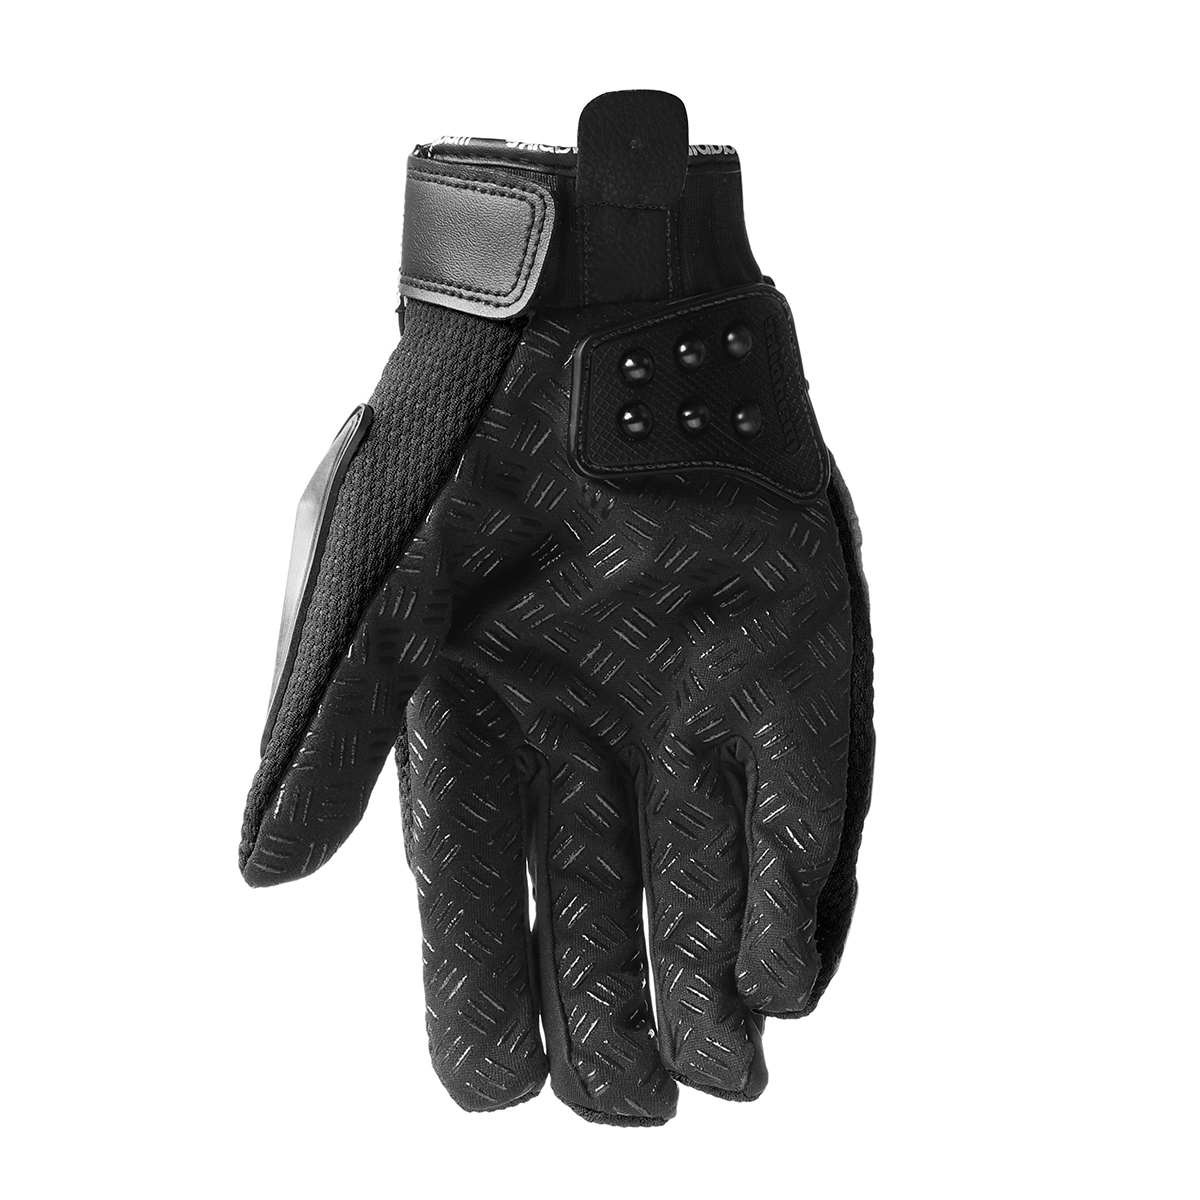 Alloy Steel Madbike Motorcycle Gloves Racing Motorbike Protective Gloves